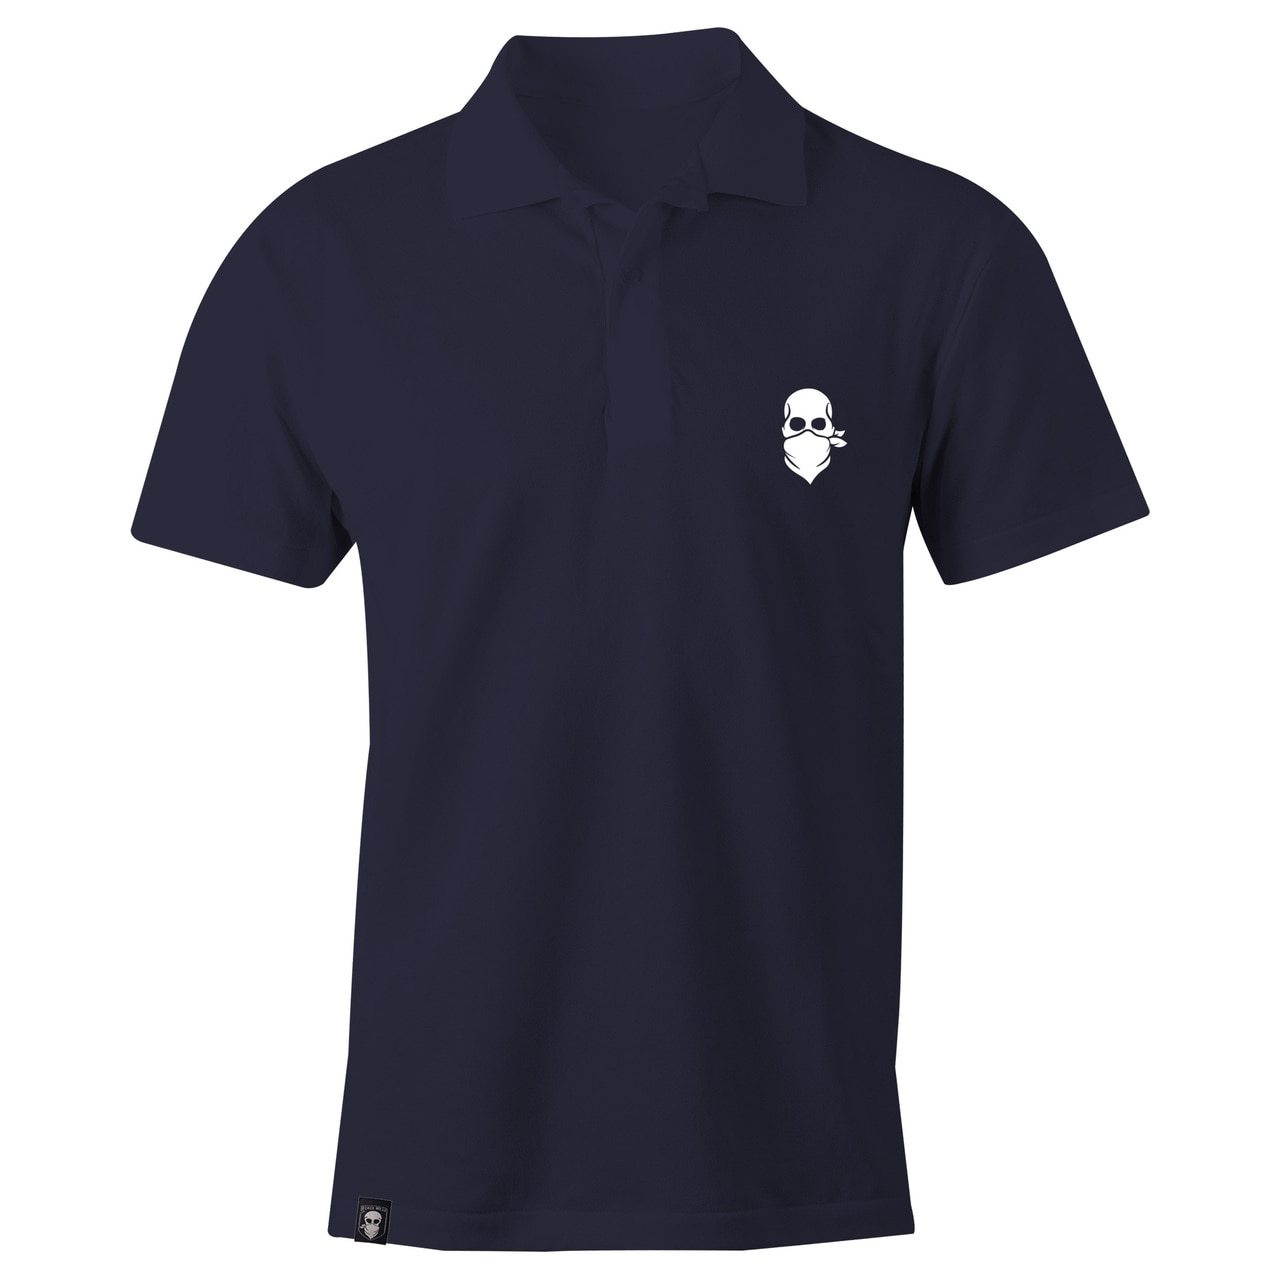 FORCE WEAR POLO NAVY-FORCE WEAR ®-Force Wear HQ